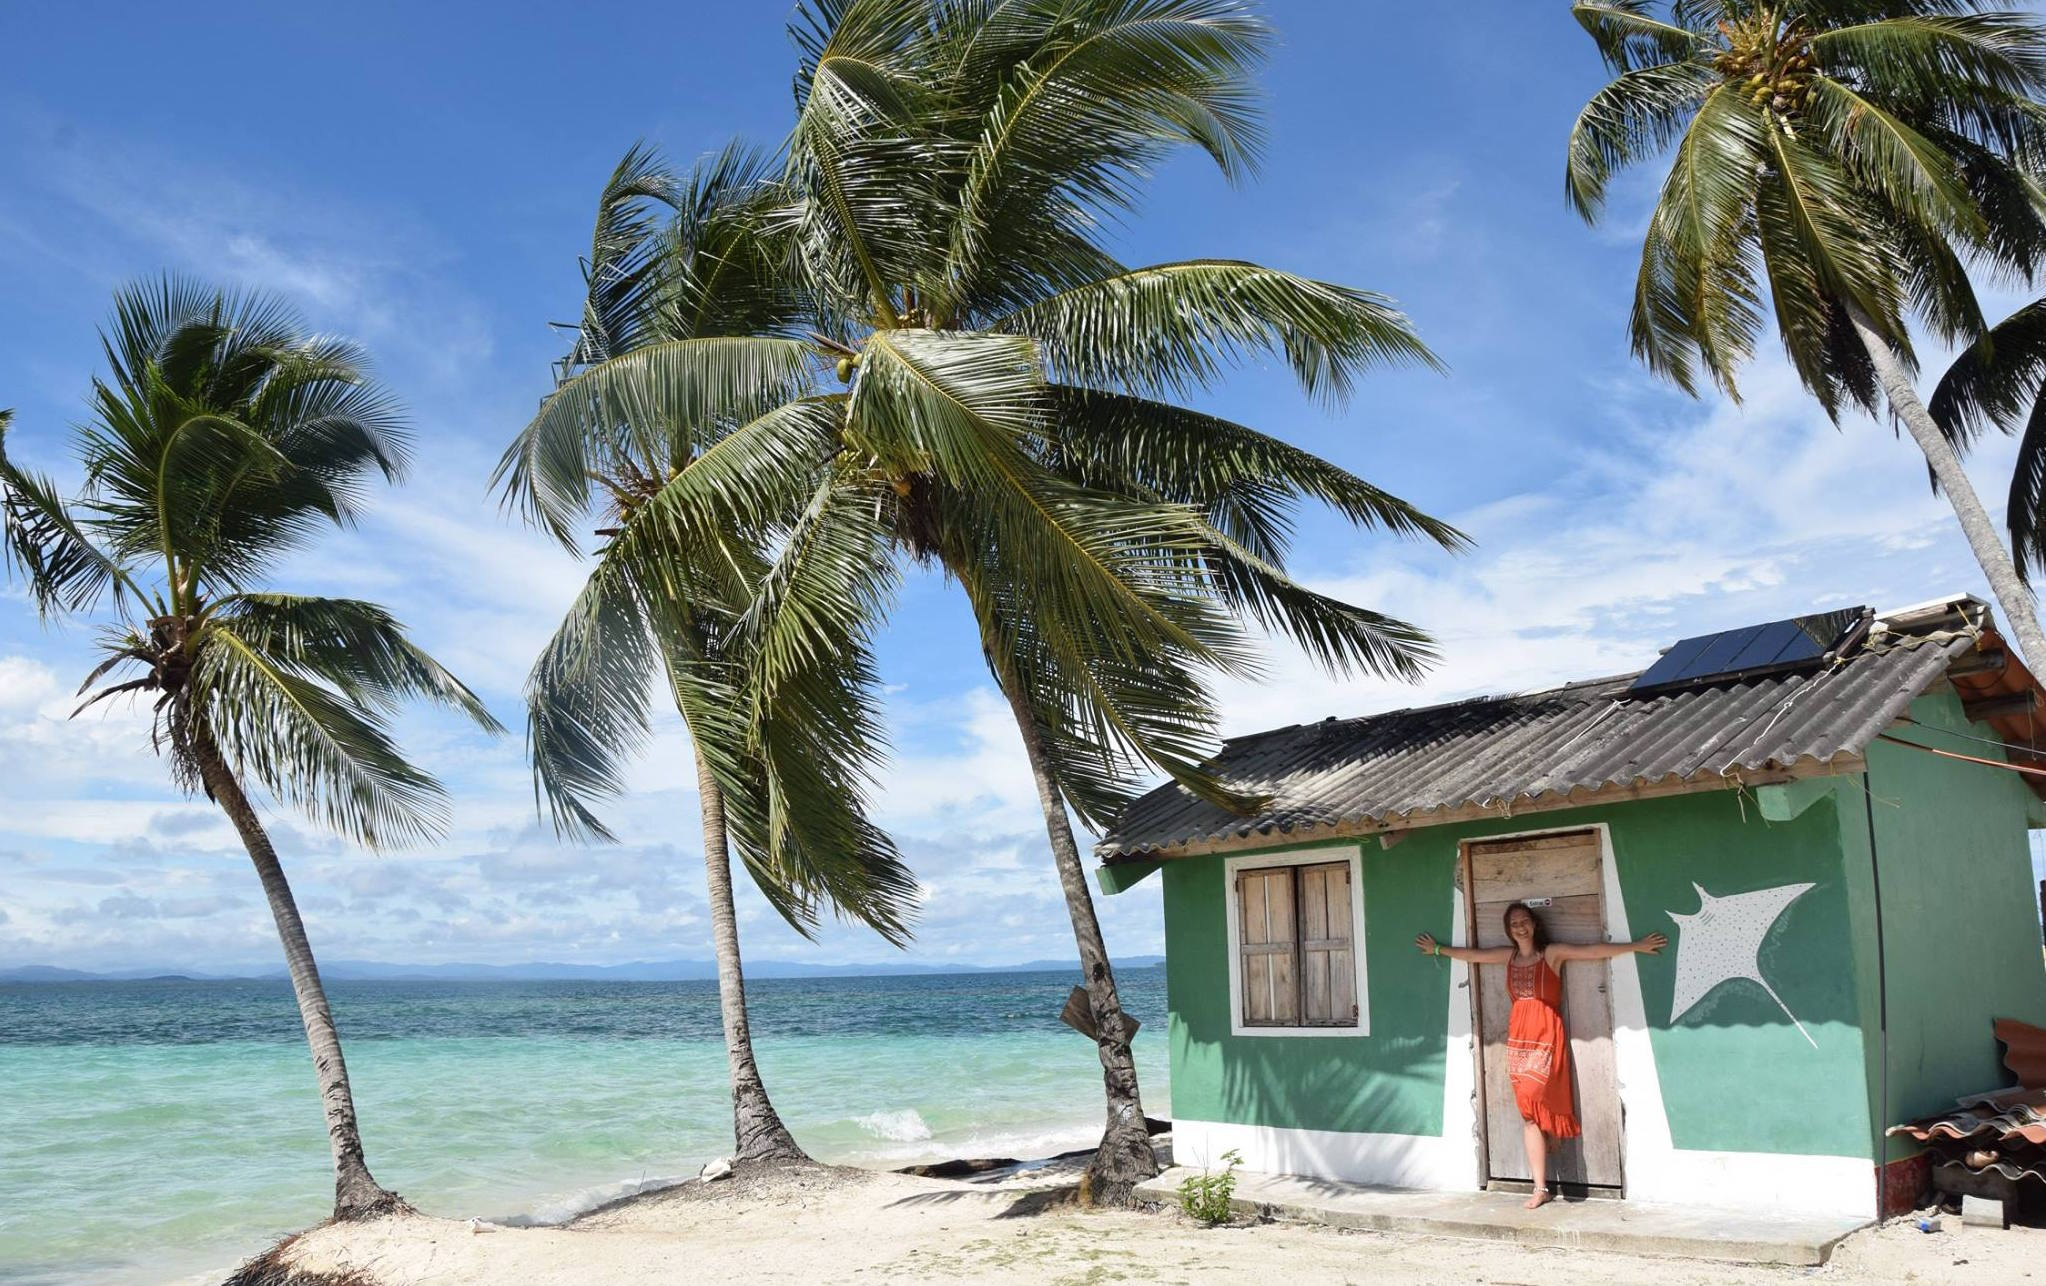 Finding peace in your home away from home - A guest post by Julie Renson founder of Beyoa Panama - settling in when moving to a different country